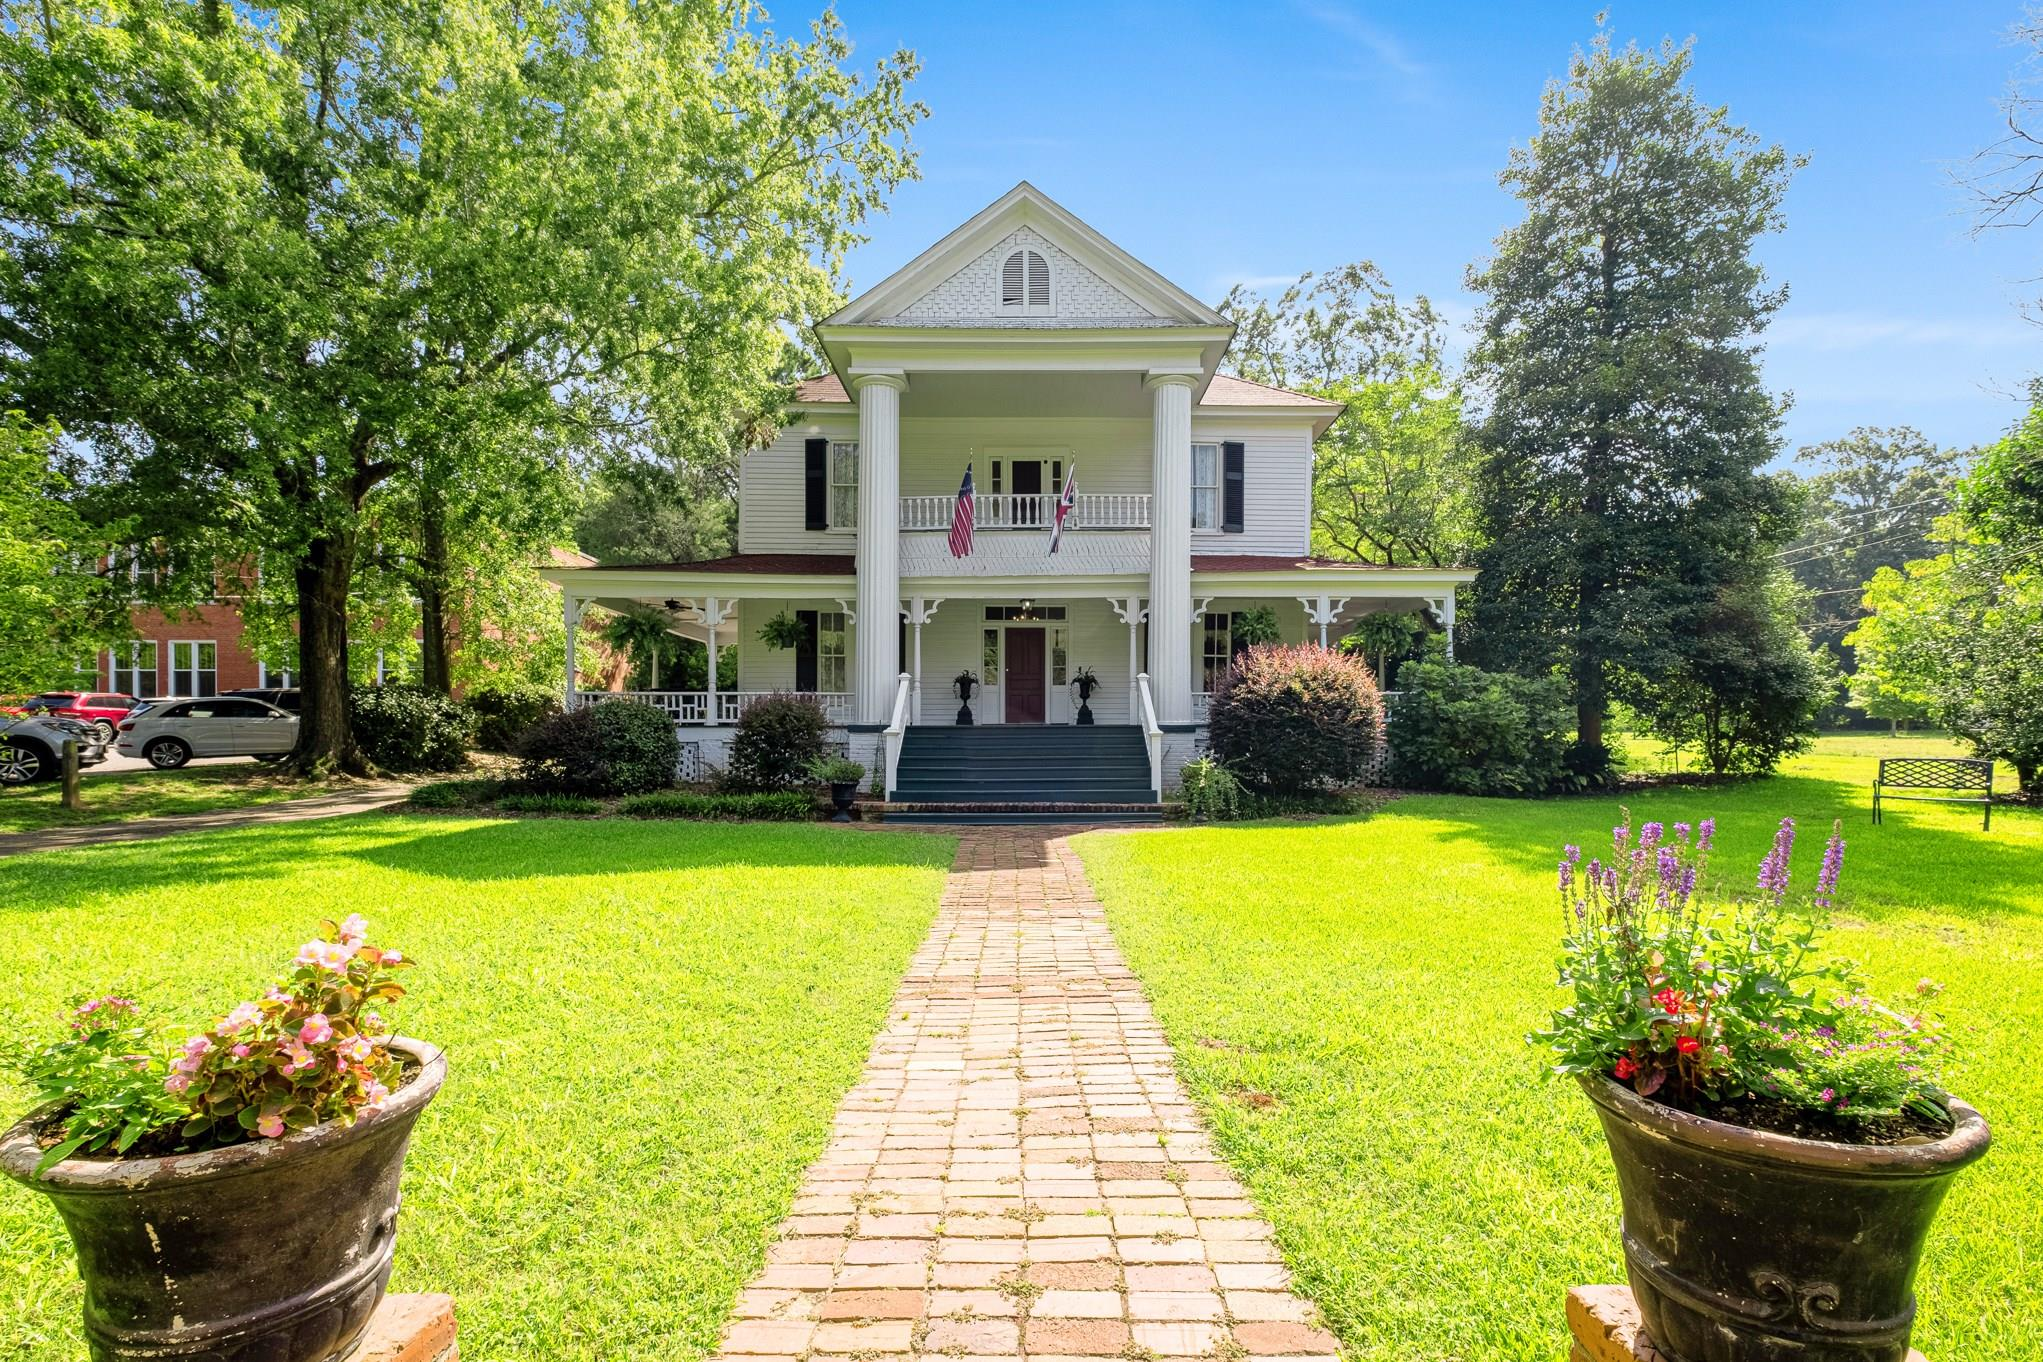 307 N Alexander Avenue Property Photo - Washington, GA real estate listing